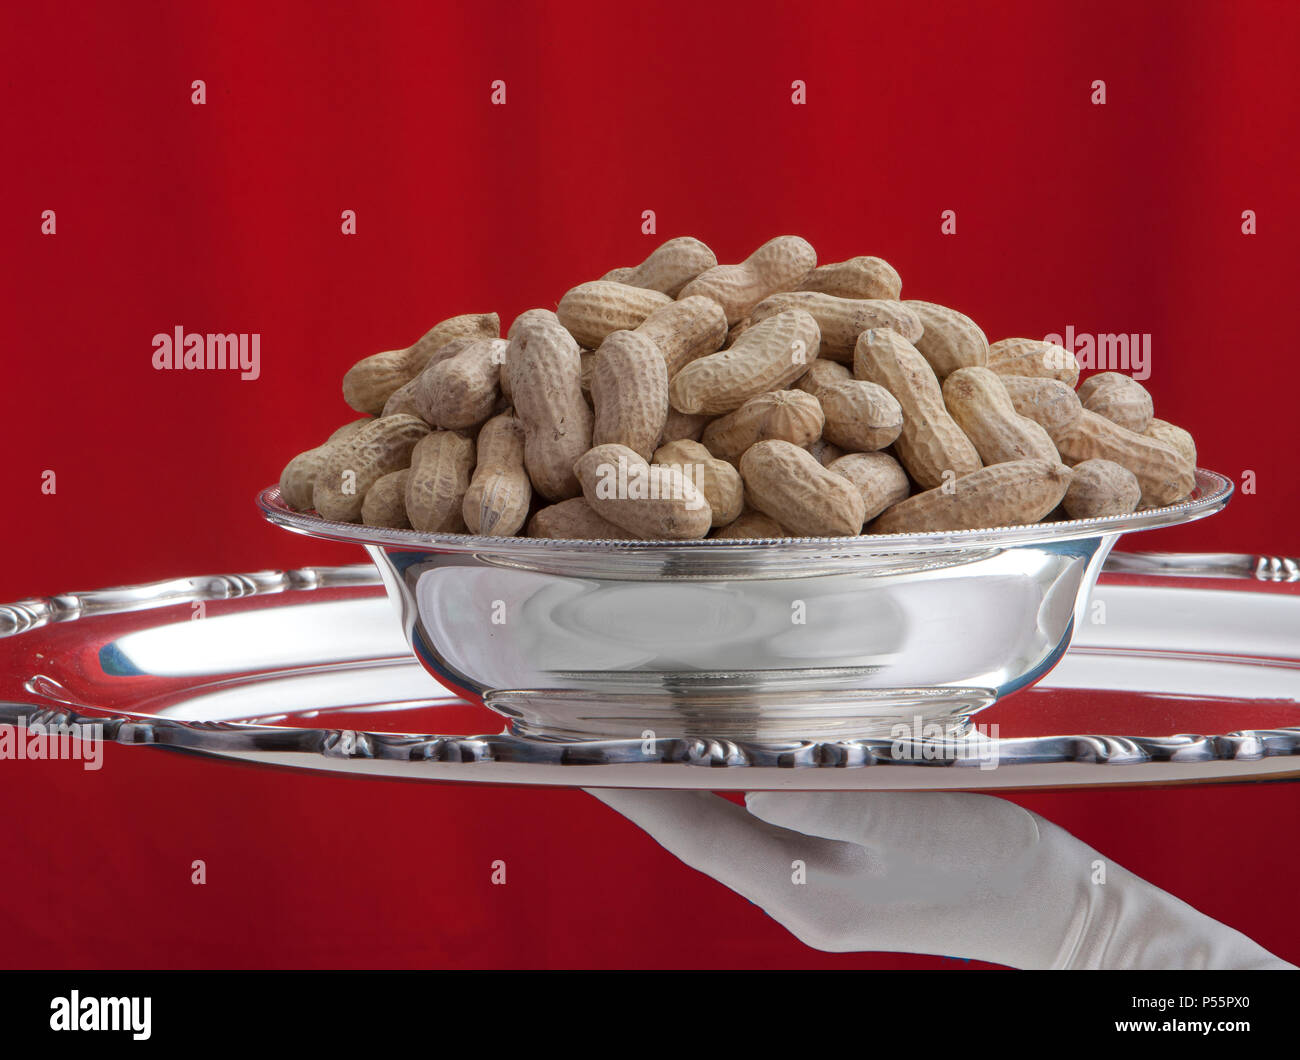 Peanuts served on a silver tray - Stock Image